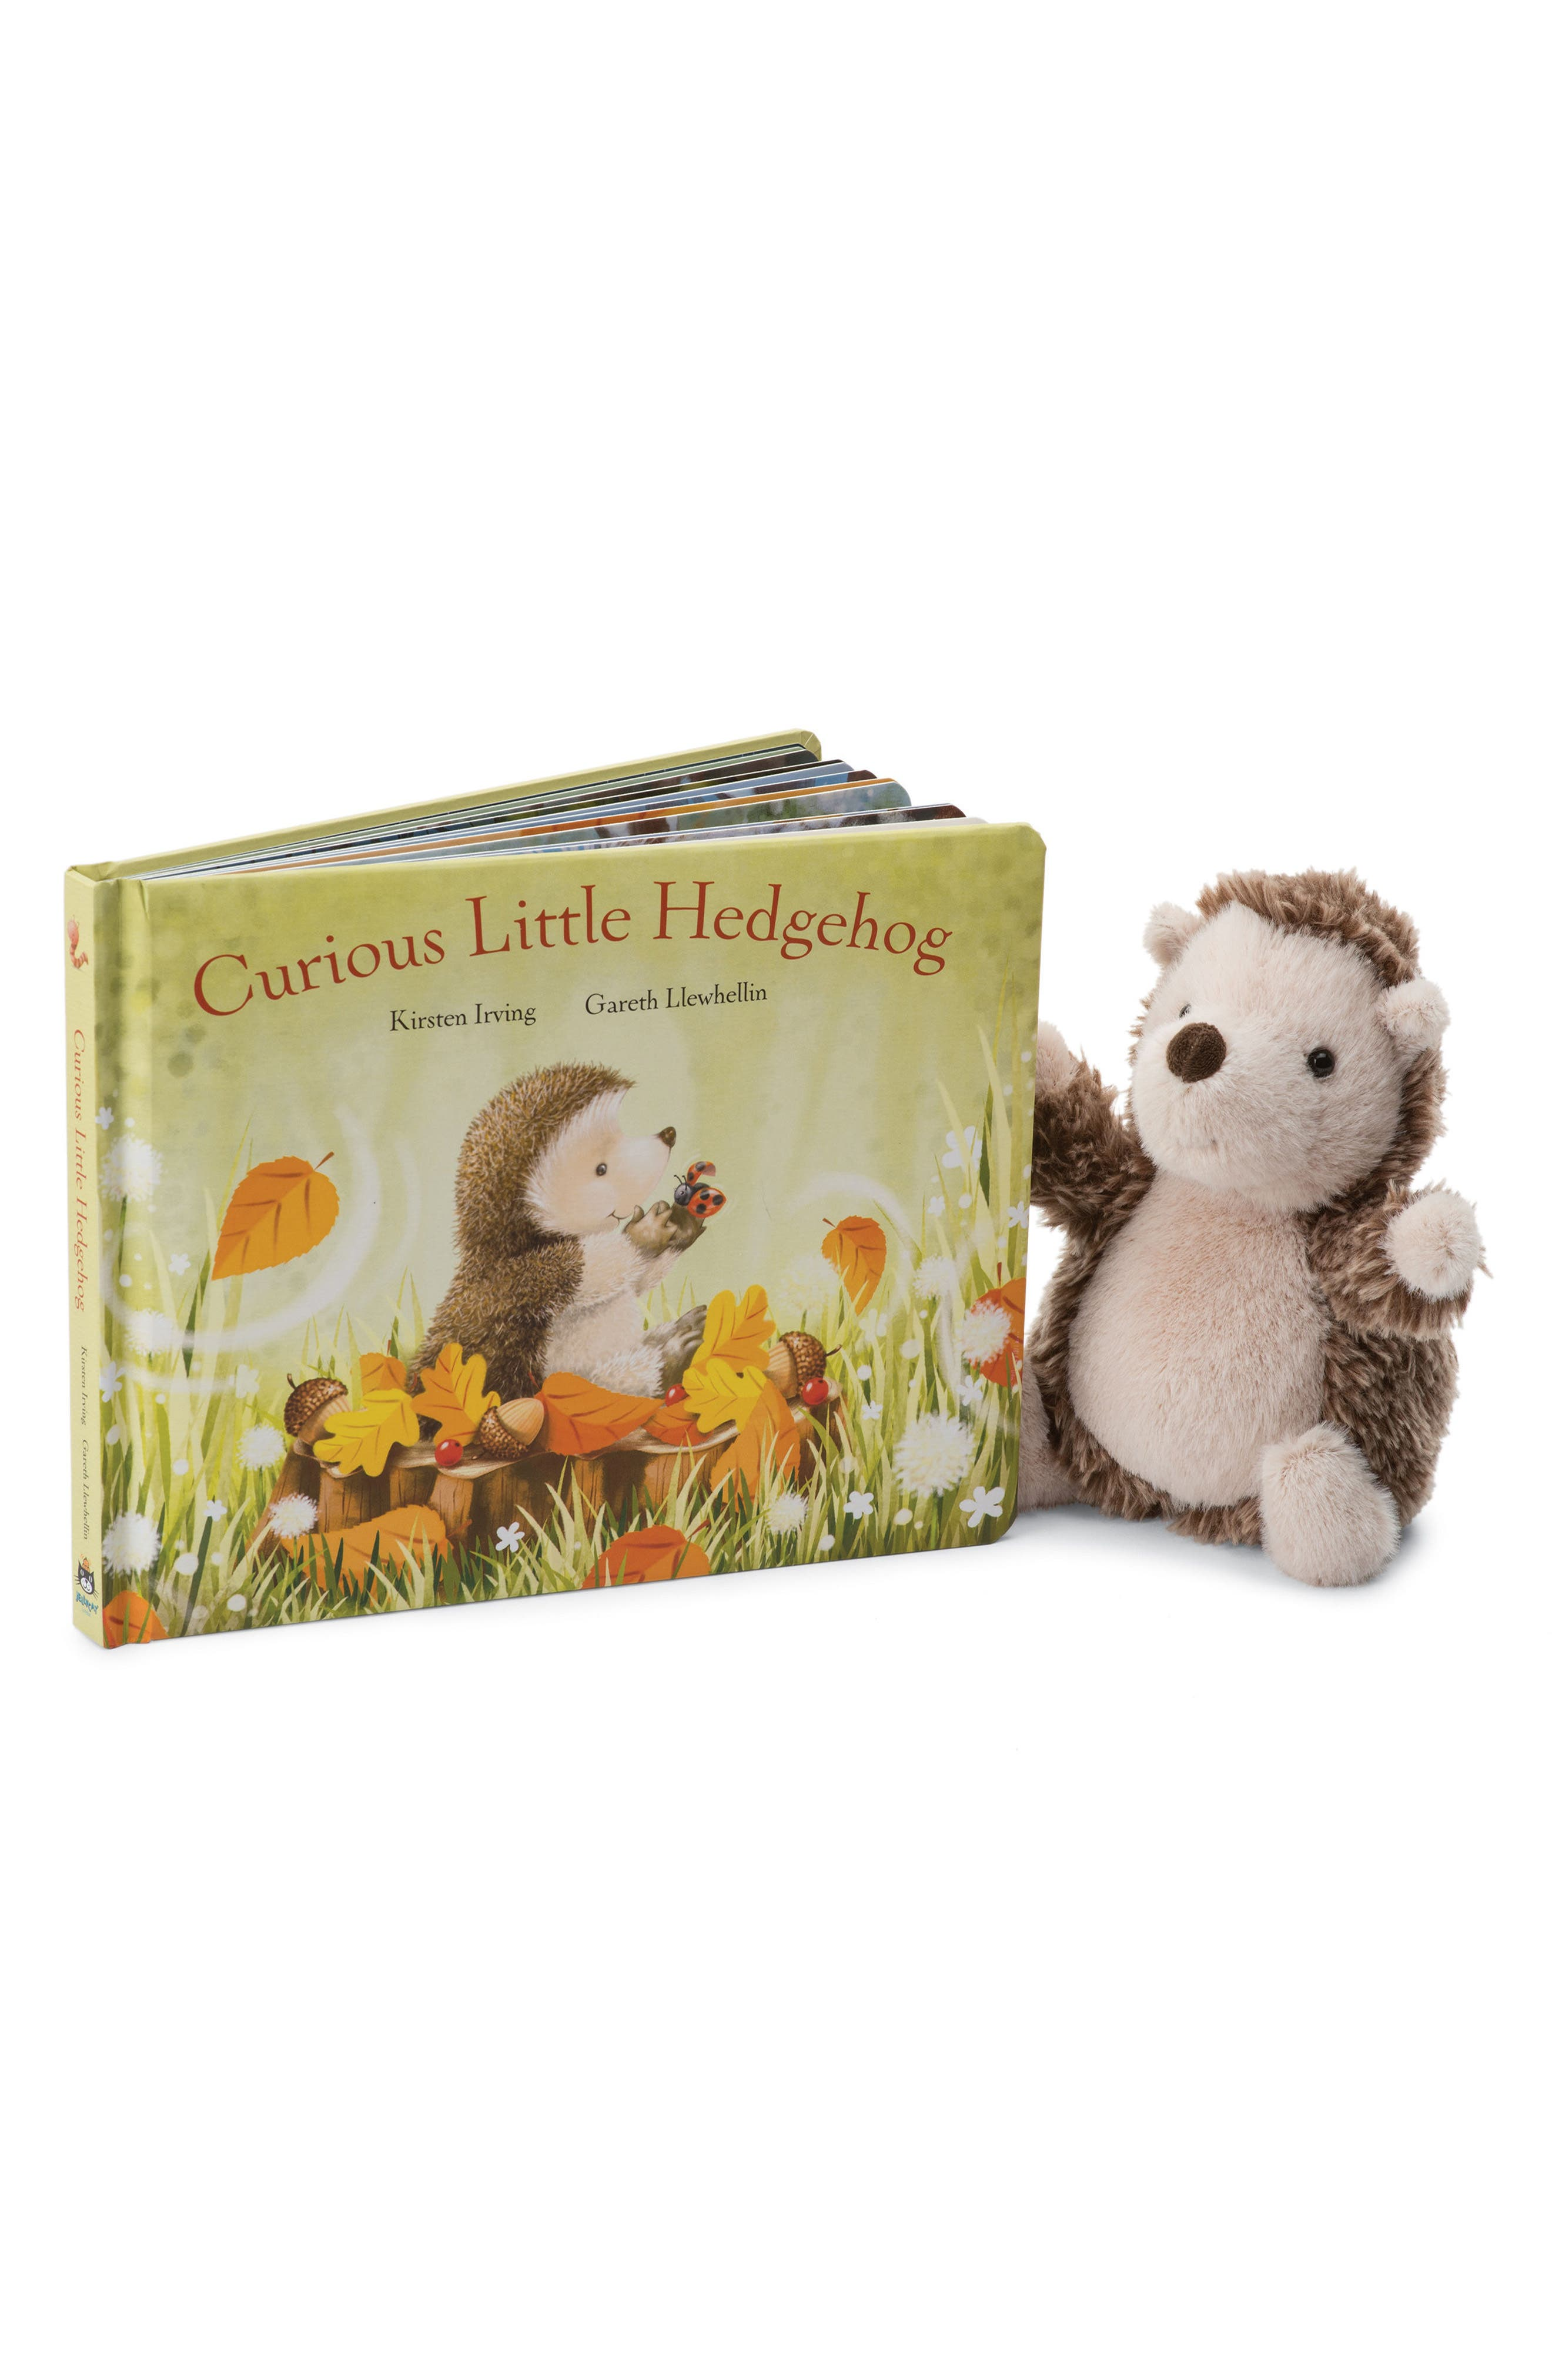 Alternate Image 1 Selected - Jellycat Curious Little Hedgehog Book & Plush Toy